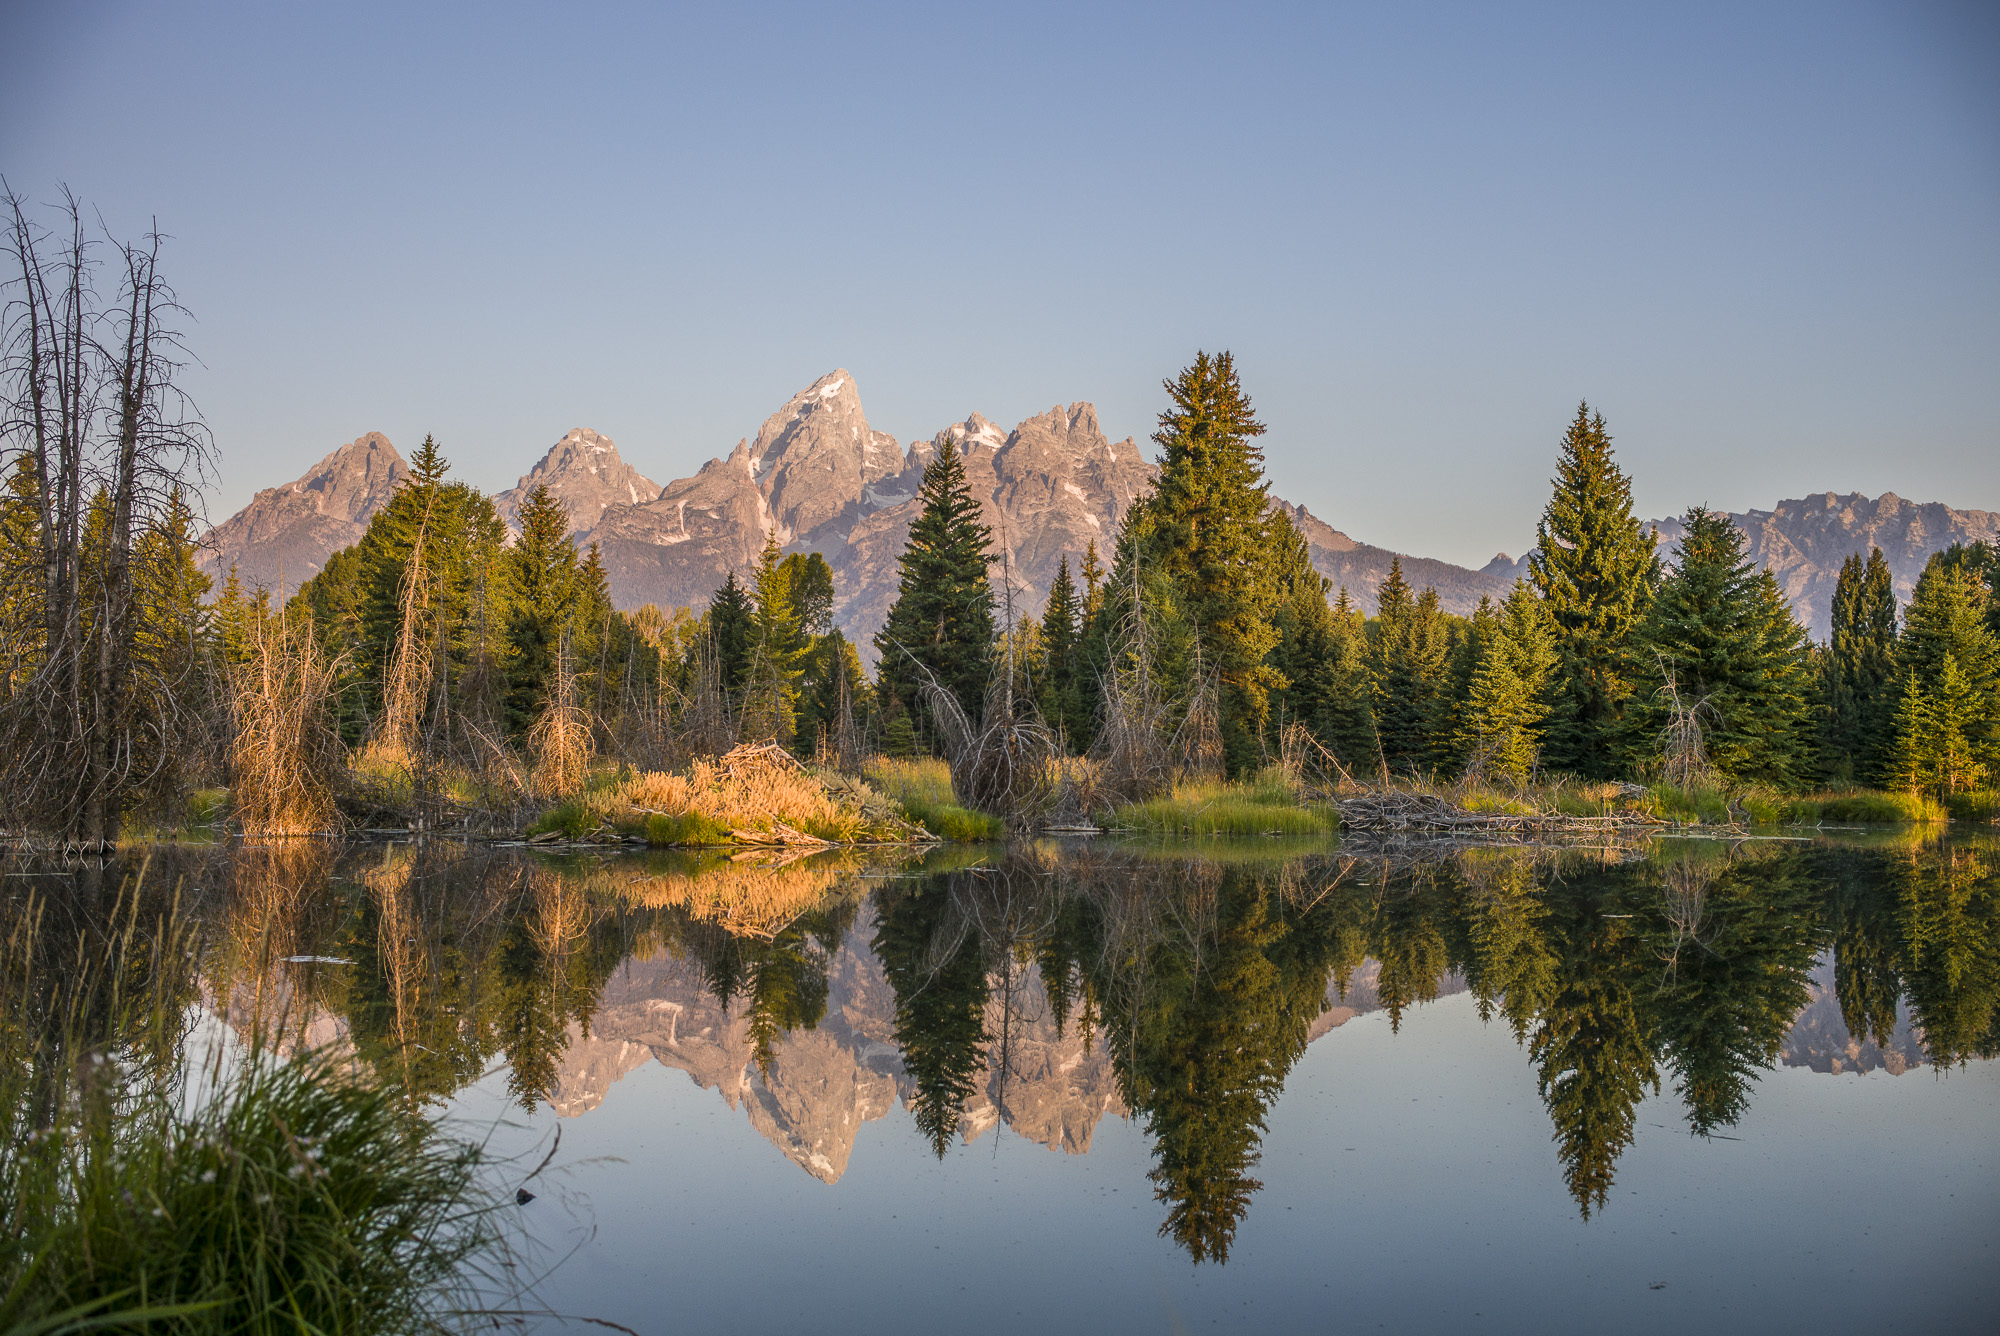 The Grand Tetons, one of the viewing options